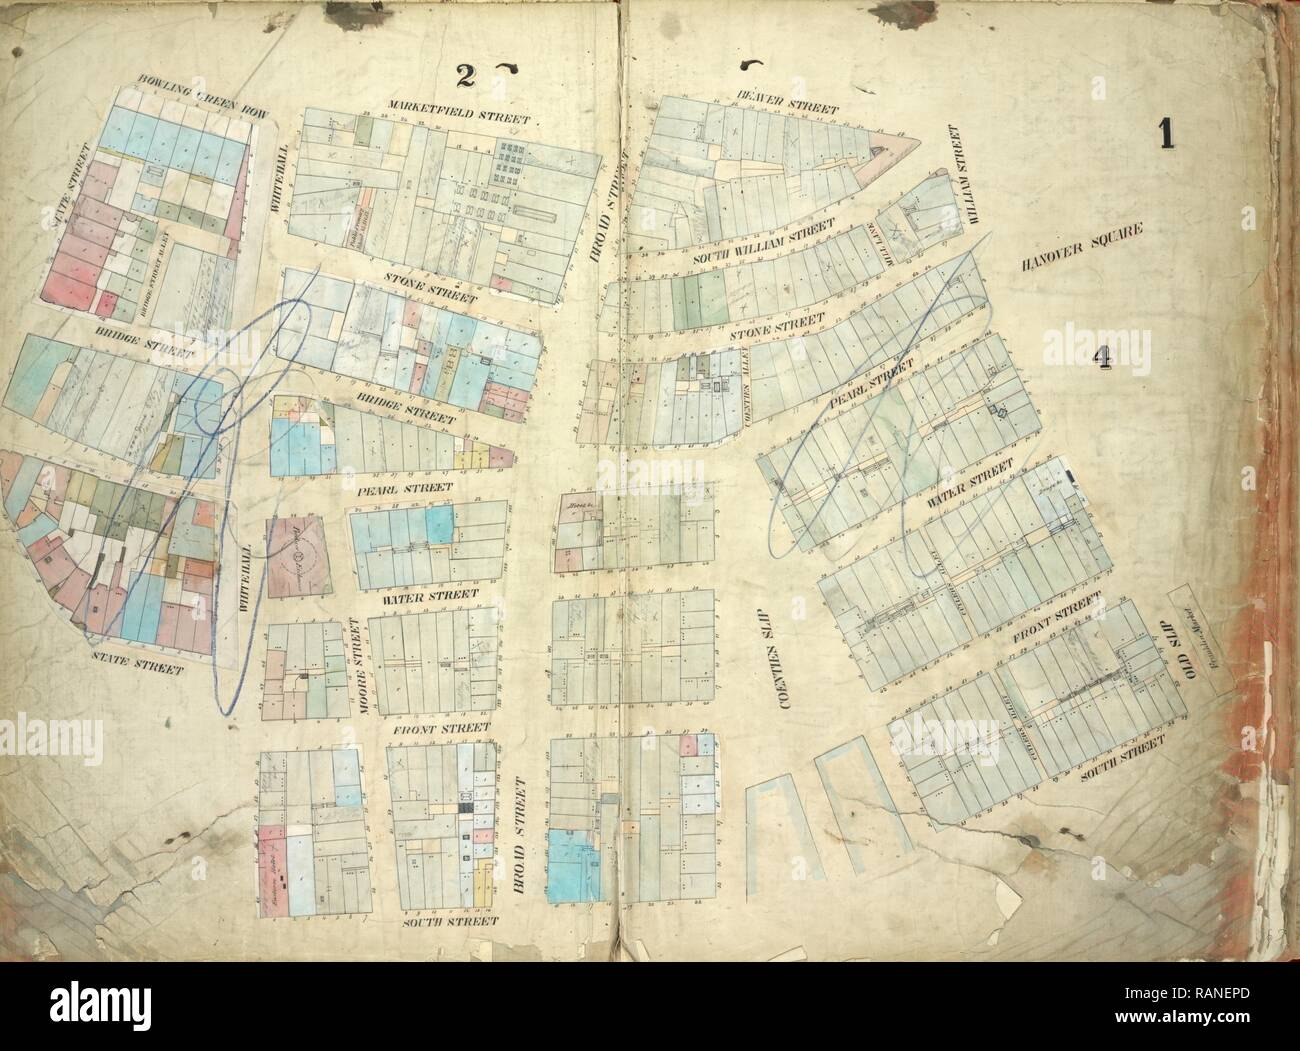 Plate 1: Map bounded by Bowling Green Row, Marketfield Street